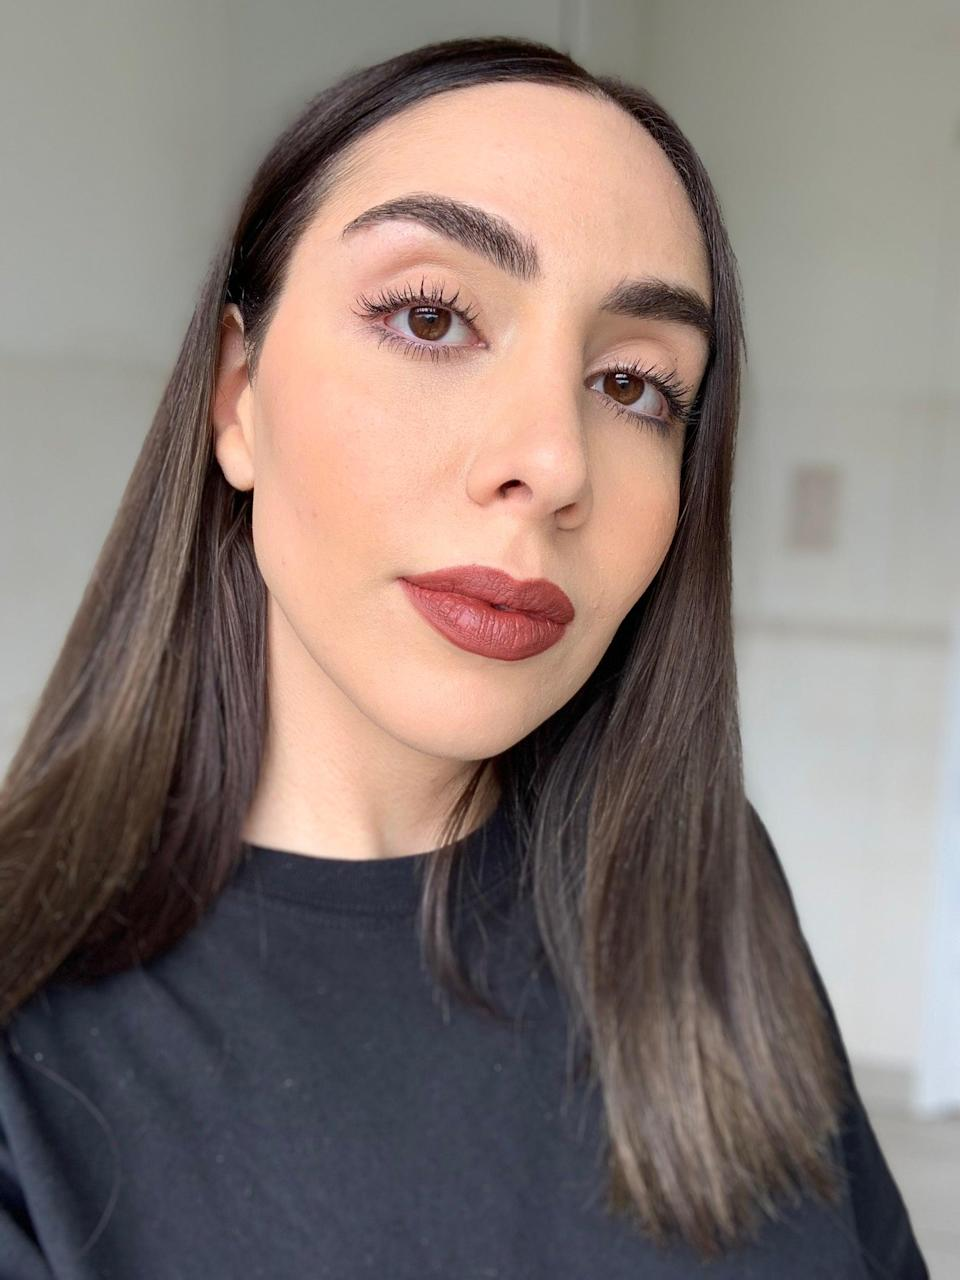 """<strong>Tester:</strong> Jacqueline<br><strong>The trend:</strong> Rusty red lips (inspired by Gwen Stefani and Courtney Cox)<br><br>""""As a self-identified <a href=""""https://www.refinery29.com/en-gb/modern-emo-makeup-looks"""" rel=""""nofollow noopener"""" target=""""_blank"""" data-ylk=""""slk:emo"""" class=""""link rapid-noclick-resp"""">emo</a>, I'm not one to shy away from dark and brooding lip colours like this one. Though '90s lipstick trends span a wealth of shades, from ultra light nude (like Vanese below) to chestnut brown (similar to Simran later on), in my mind the decade is characterised by russety, mauve hues. Influenced by Gwen Stefani, I teamed this burnt red shade with matte skin, a tiny bit of bronzer to contour my cheekbones and lashings of mascara. I also lined my lips with <a href=""""https://www.cultbeauty.co.uk/vieve-modern-lip-definer.html?variant_id=30359"""" rel=""""nofollow noopener"""" target=""""_blank"""" data-ylk=""""slk:VIEVE Modern Lip Definer in Tailored, £15"""" class=""""link rapid-noclick-resp"""">VIEVE Modern Lip Definer in Tailored, £15</a>. I adore it. It's such a throwback colour combination but it works just as well in 2021. The texture of both the lipstick and lip liner is creamy and the finish is semi-matte, so it moisturises lips. They also pass the face mask test.""""<br><br><strong>diego dalla palma</strong> Rookwood Red Lip Kit, $, available at <a href=""""https://www.lookfantastic.com/diego-dalla-palma-rookwood-red-lip-kit/13157999.html"""" rel=""""nofollow noopener"""" target=""""_blank"""" data-ylk=""""slk:LookFantastic"""" class=""""link rapid-noclick-resp"""">LookFantastic</a><br><br><strong>VIEVE</strong> Modern Lip Definer in Tailored, $, available at <a href=""""https://www.cultbeauty.co.uk/vieve-modern-lip-definer.html?variant_id=30359"""" rel=""""nofollow noopener"""" target=""""_blank"""" data-ylk=""""slk:Cult Beauty"""" class=""""link rapid-noclick-resp"""">Cult Beauty</a>"""